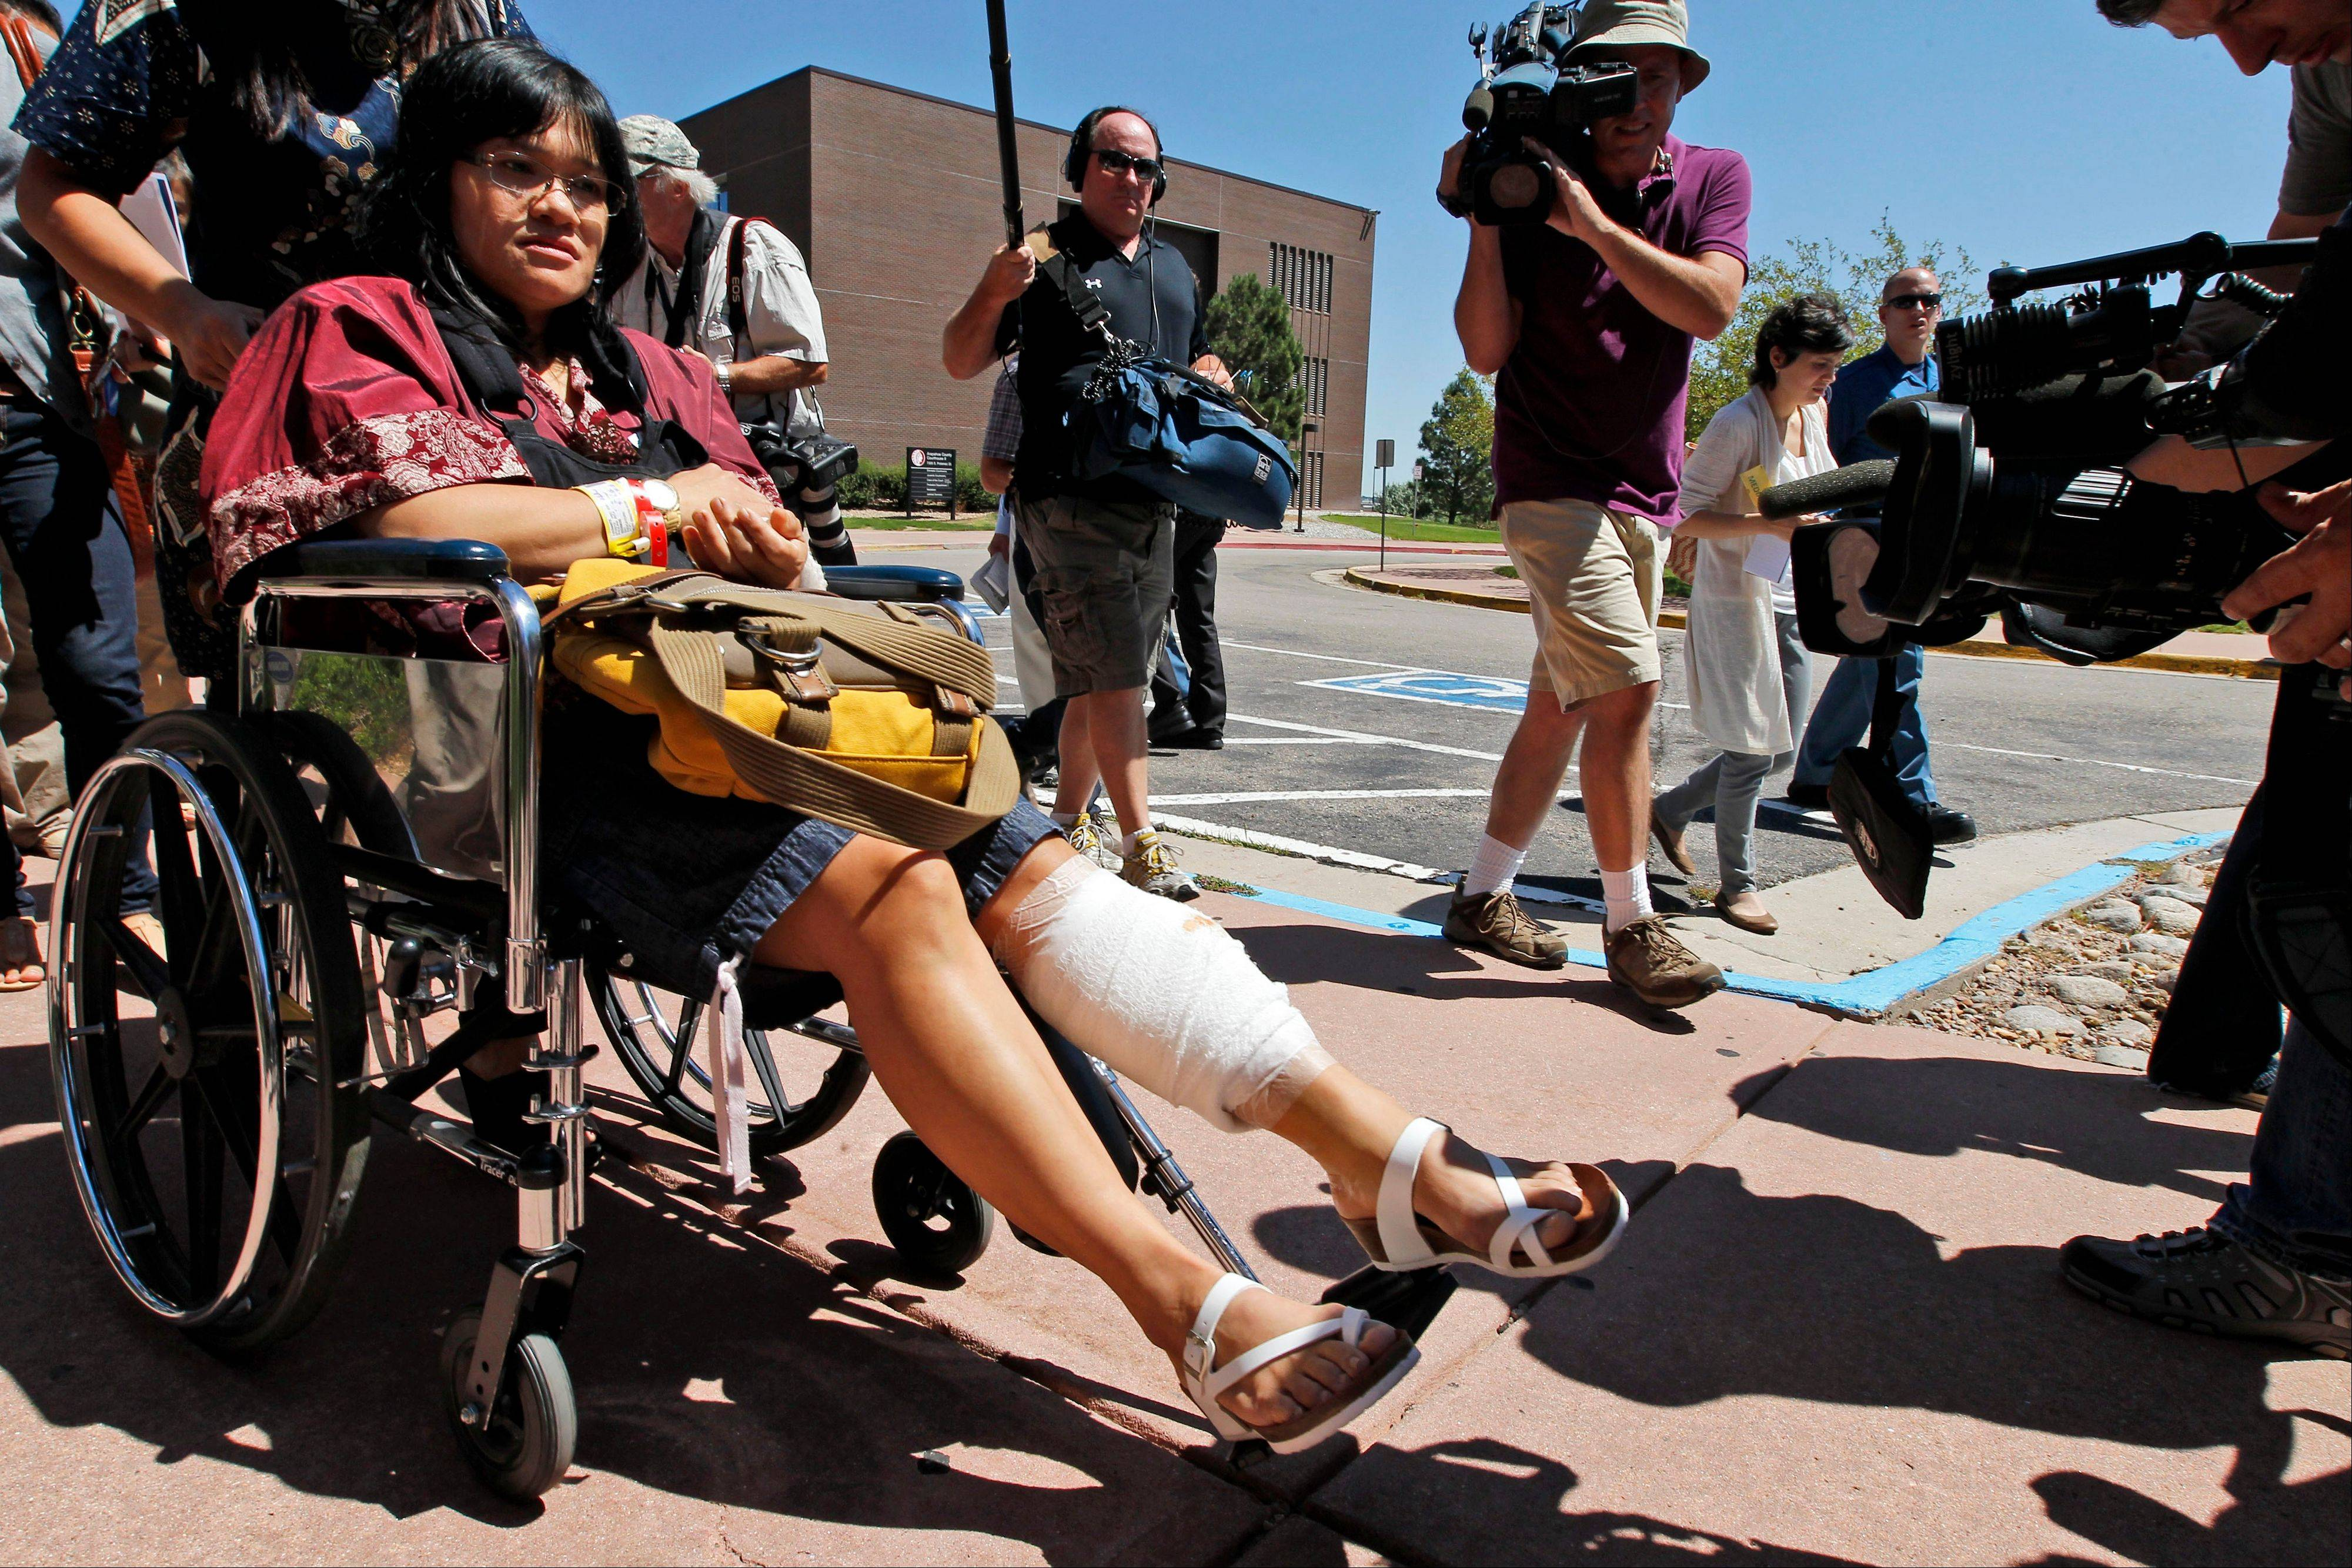 Rita Paulina, in wheelchair, who was injured in the attack, departs the Arapahoe County Courthouse after an arraignment hearing for the accused theater shooter Monday in Centennial, Colo. Colorado prosecutors filed formal charges Monday against the former neuroscience student accused of killing 12 people and wounding 58 others at a movie theater.